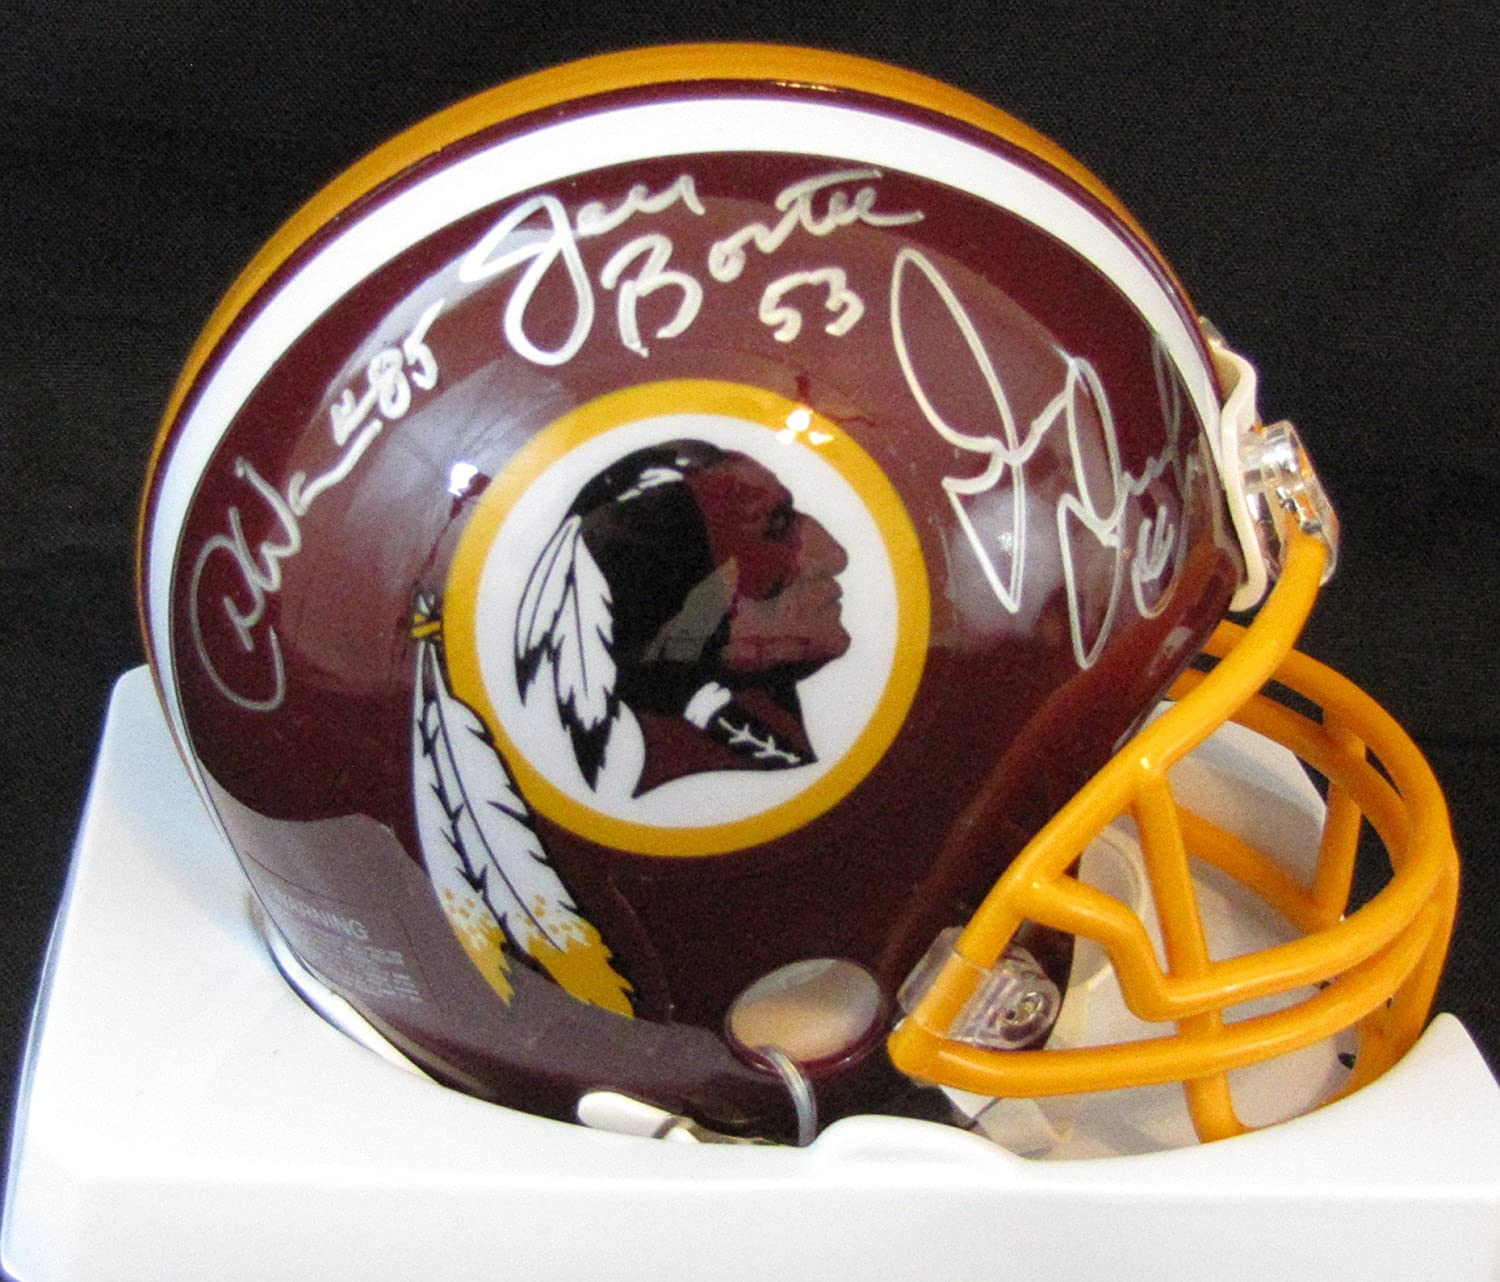 Joe Jacoby, Jeff Bostic & Donnie Warren 3 Time Super Bowl Champion Hogs Signed Washington Redskins Mini Helmets Riddell